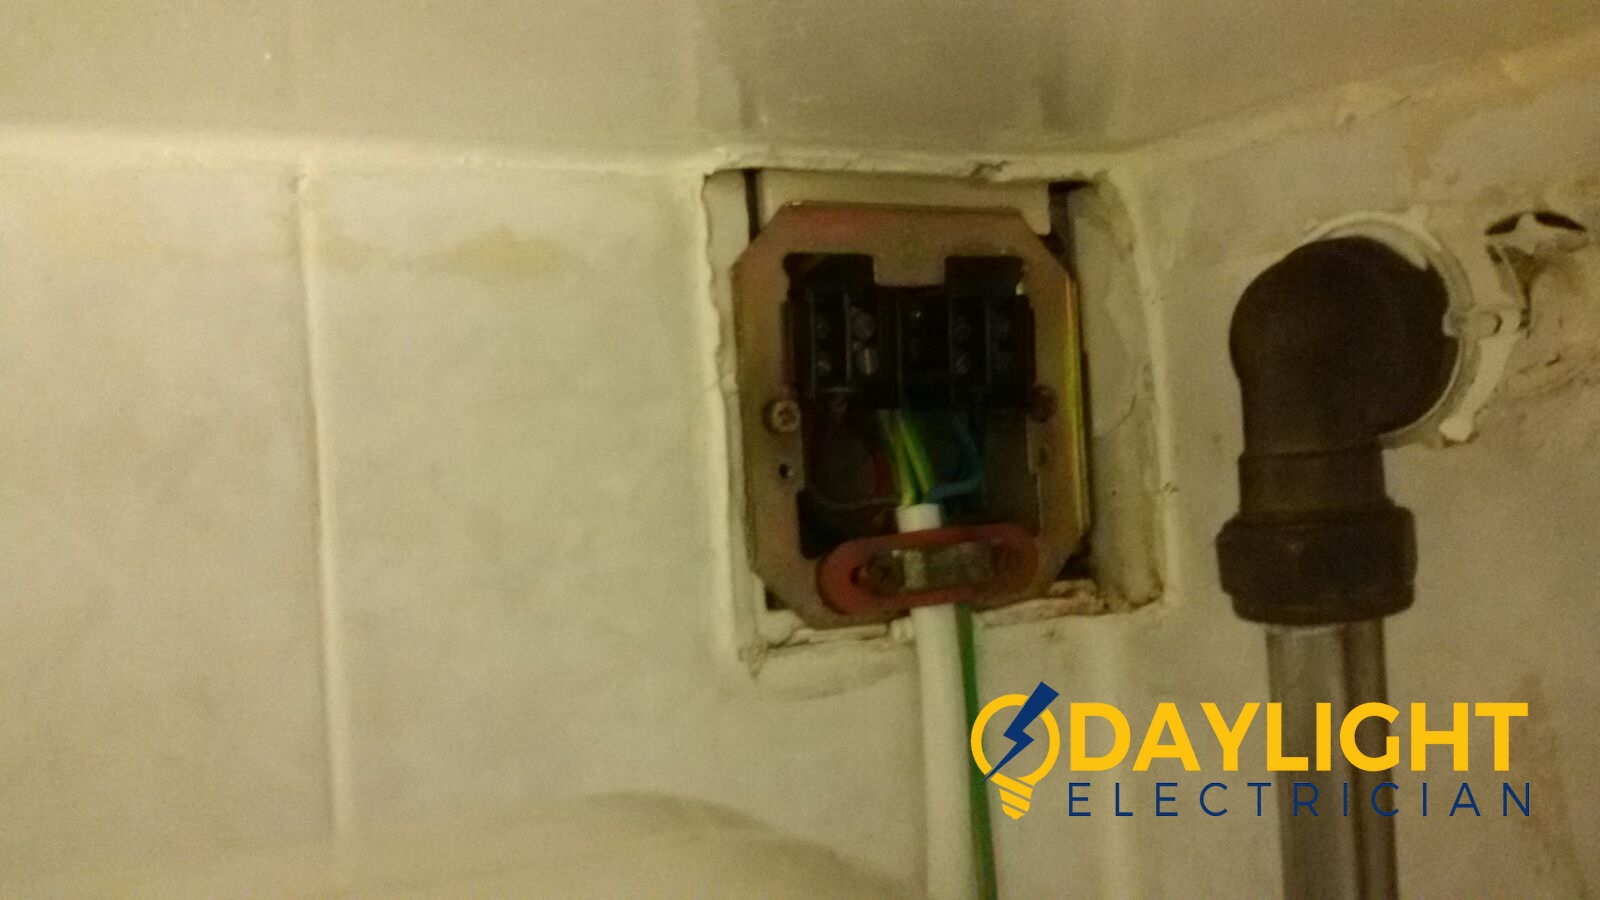 change-water-heater-connector-proper-earthing-electrician-singapore-HDB-jurong-west-4_wm